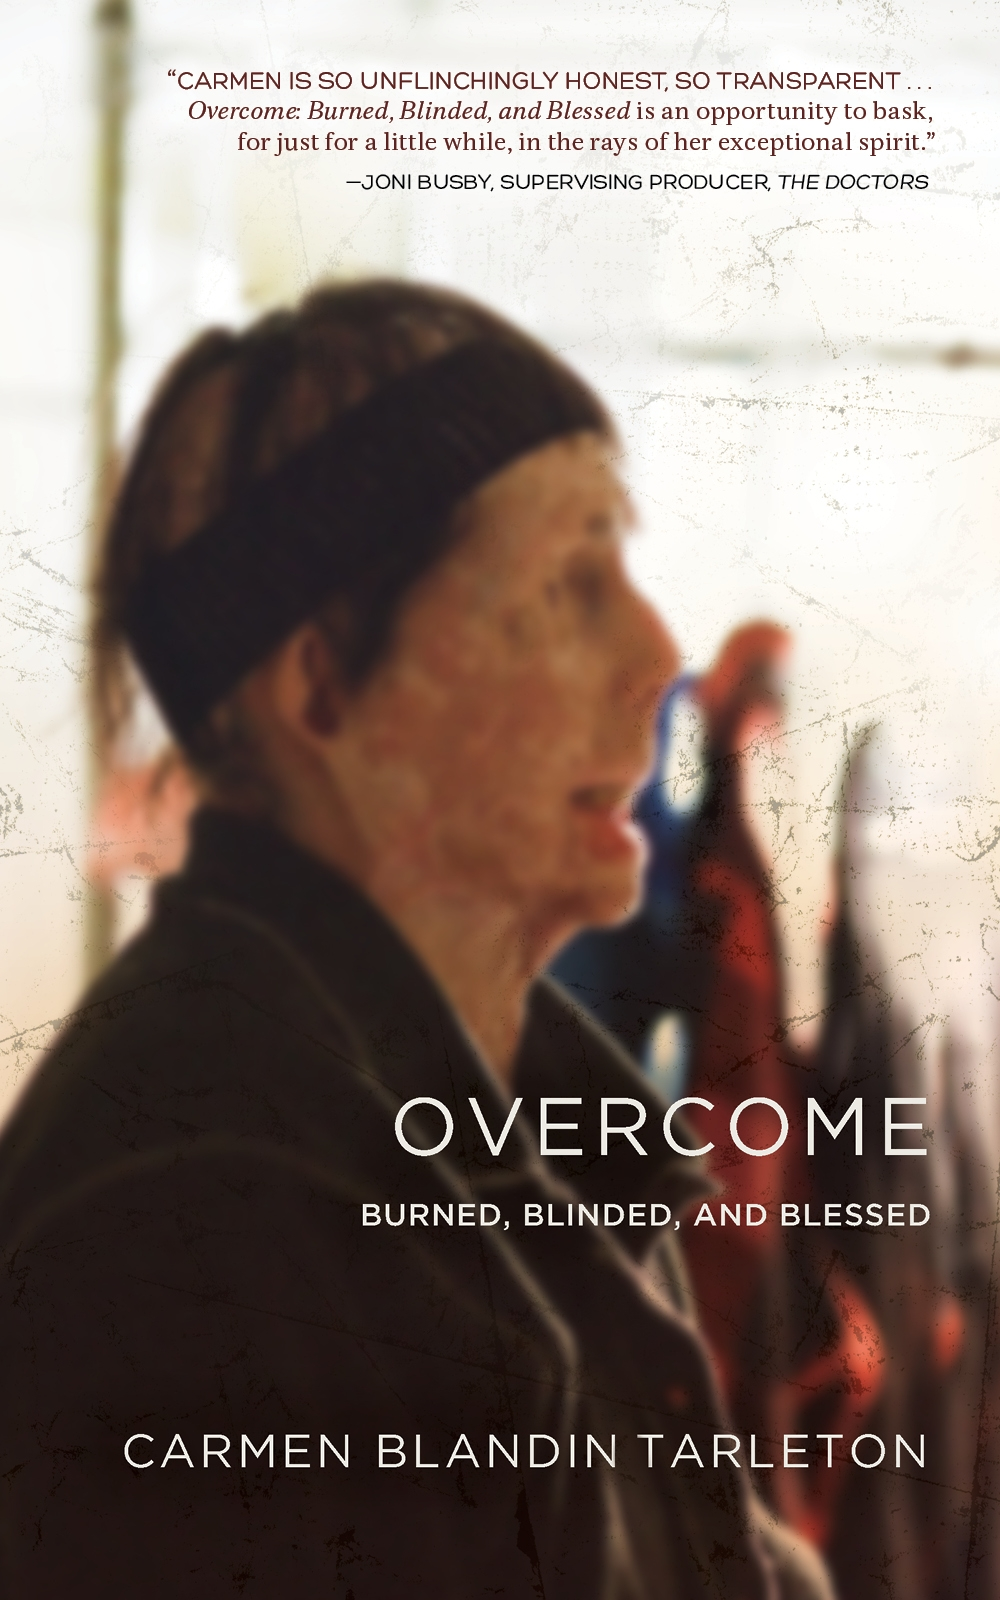 Overcome: Burned, Blinded, and Blessed